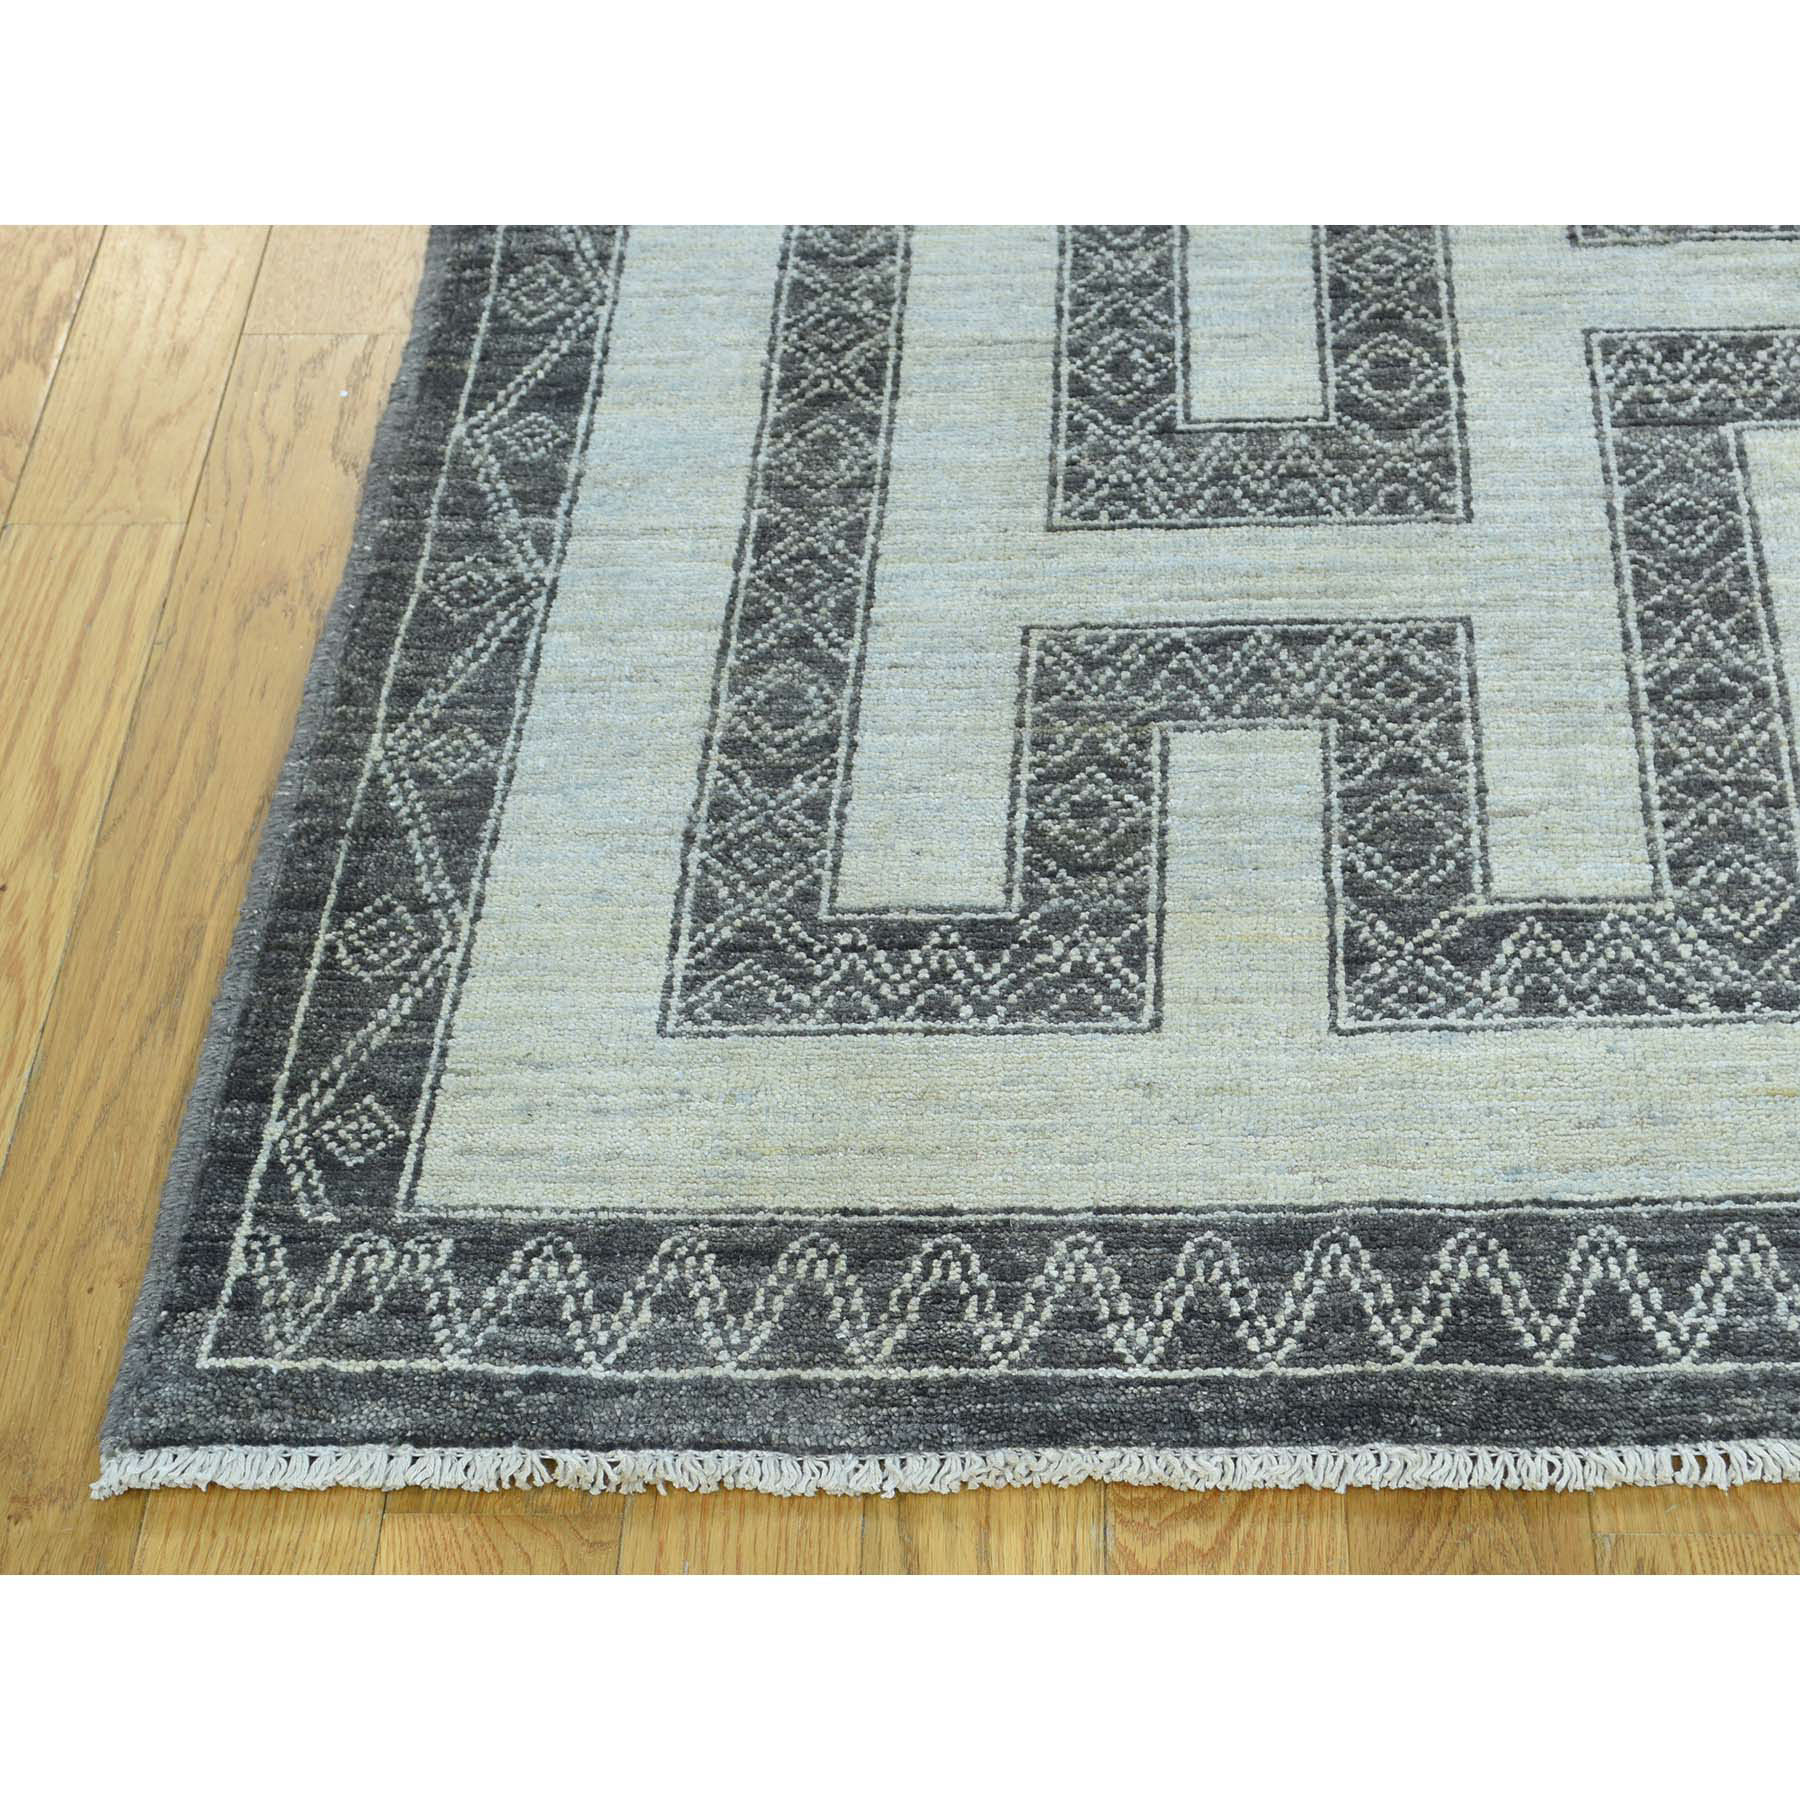 6-x9-1  Hand-Knotted Pure Wool Maze Design with Berber Influence Rug